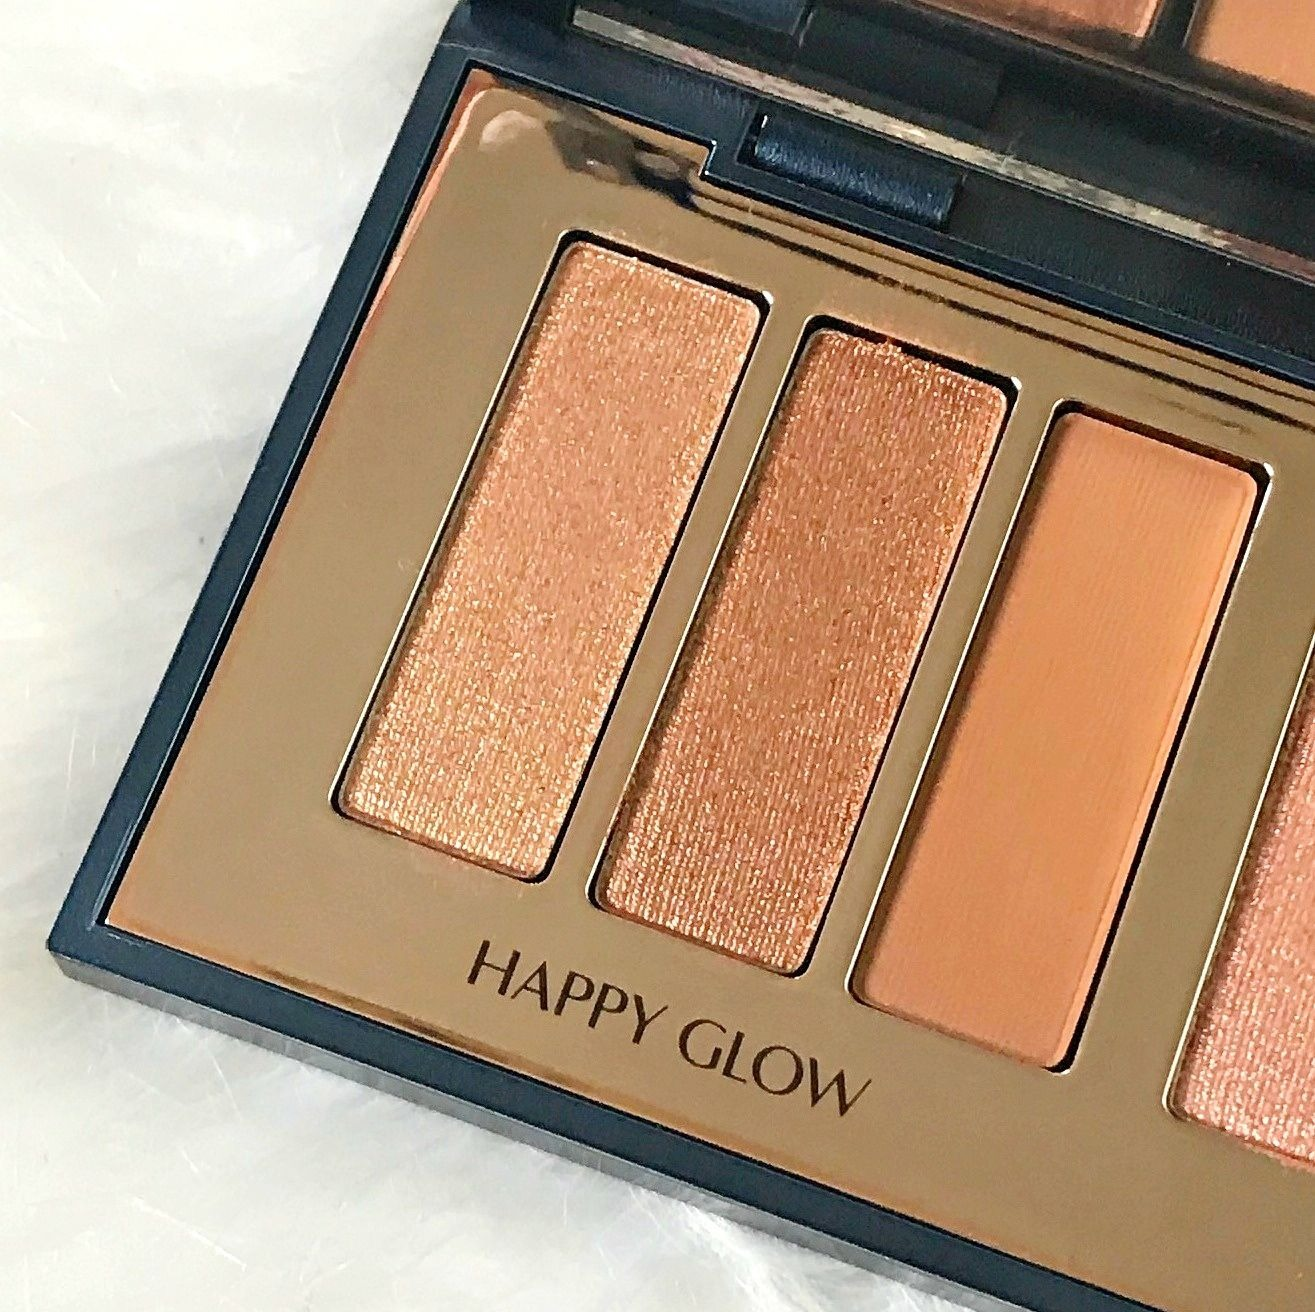 Charlotte Tilbury Starry Eyes To Hypnotise Palette Review & Swatches